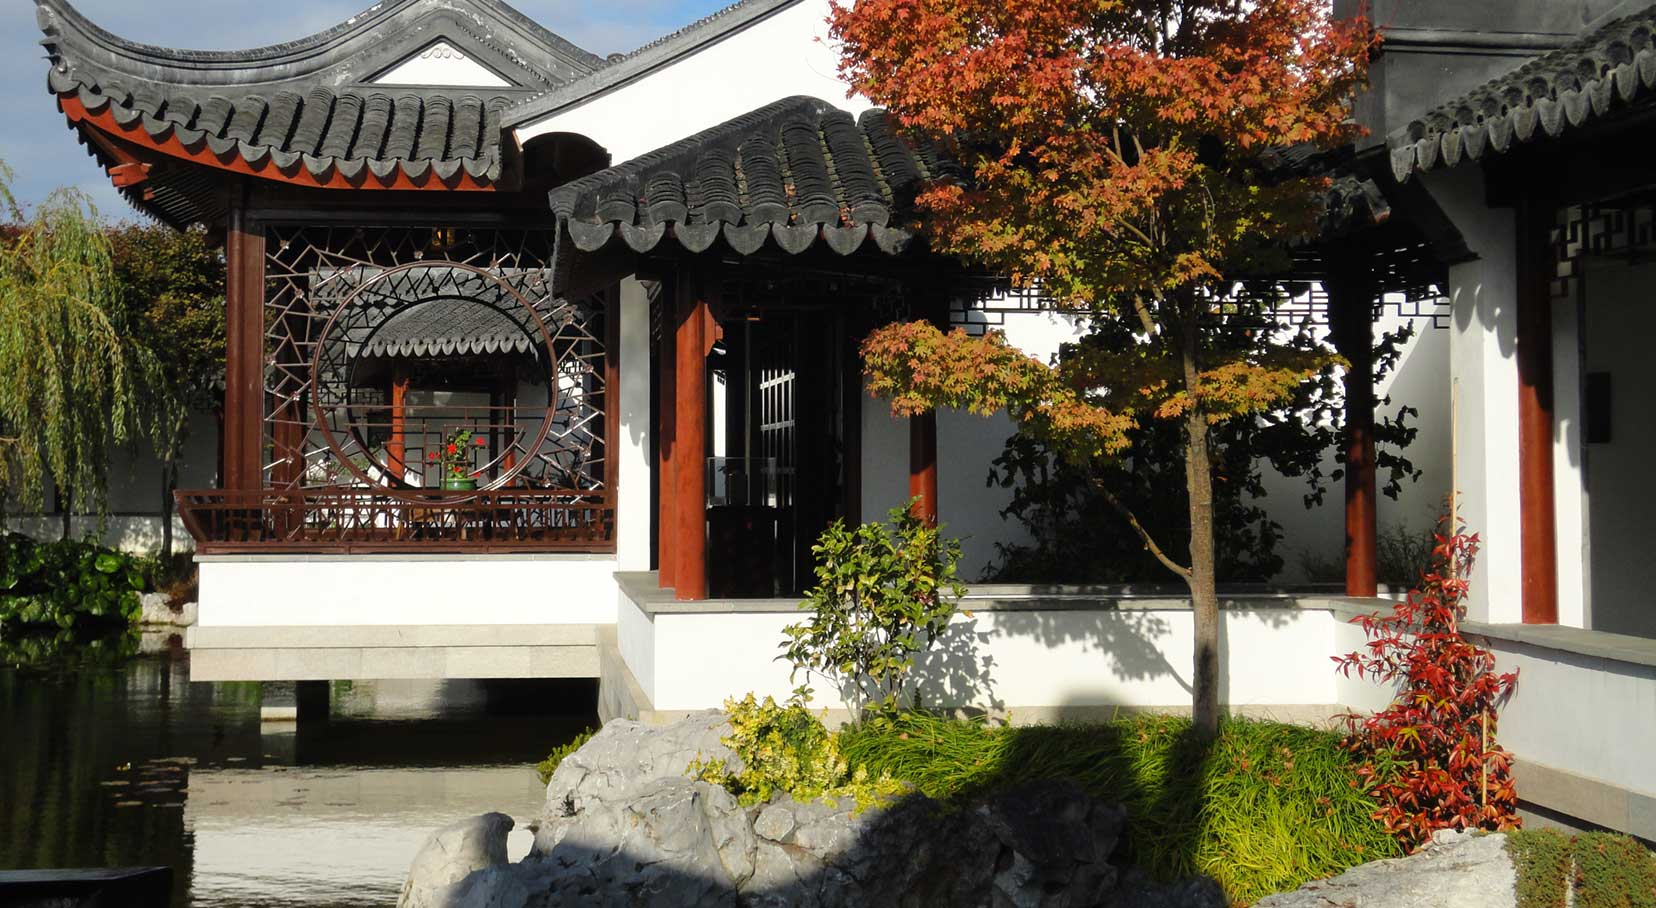 Dunedin Chinese Garden - About the garden